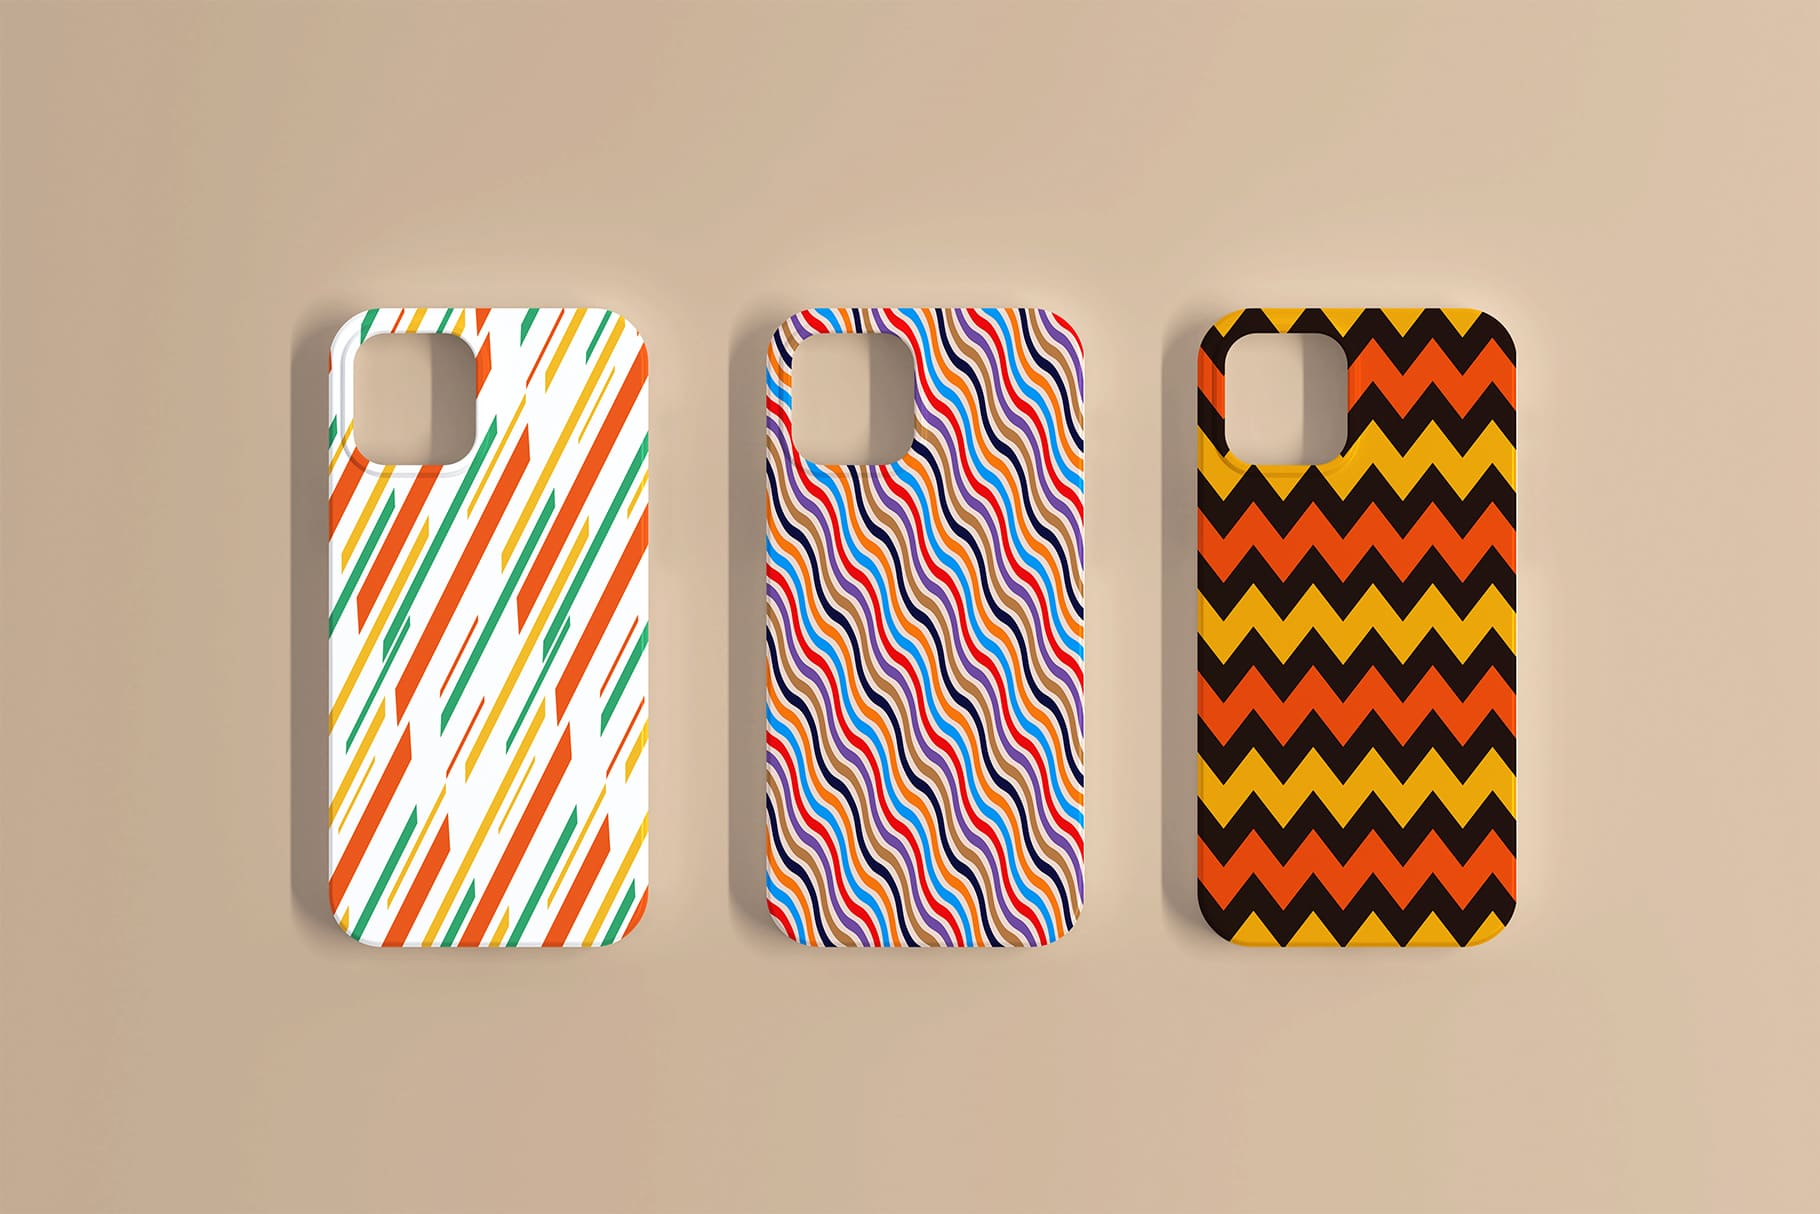 Stylish bright cases for iPhone. Multi Liner Seamless Patterns Collection